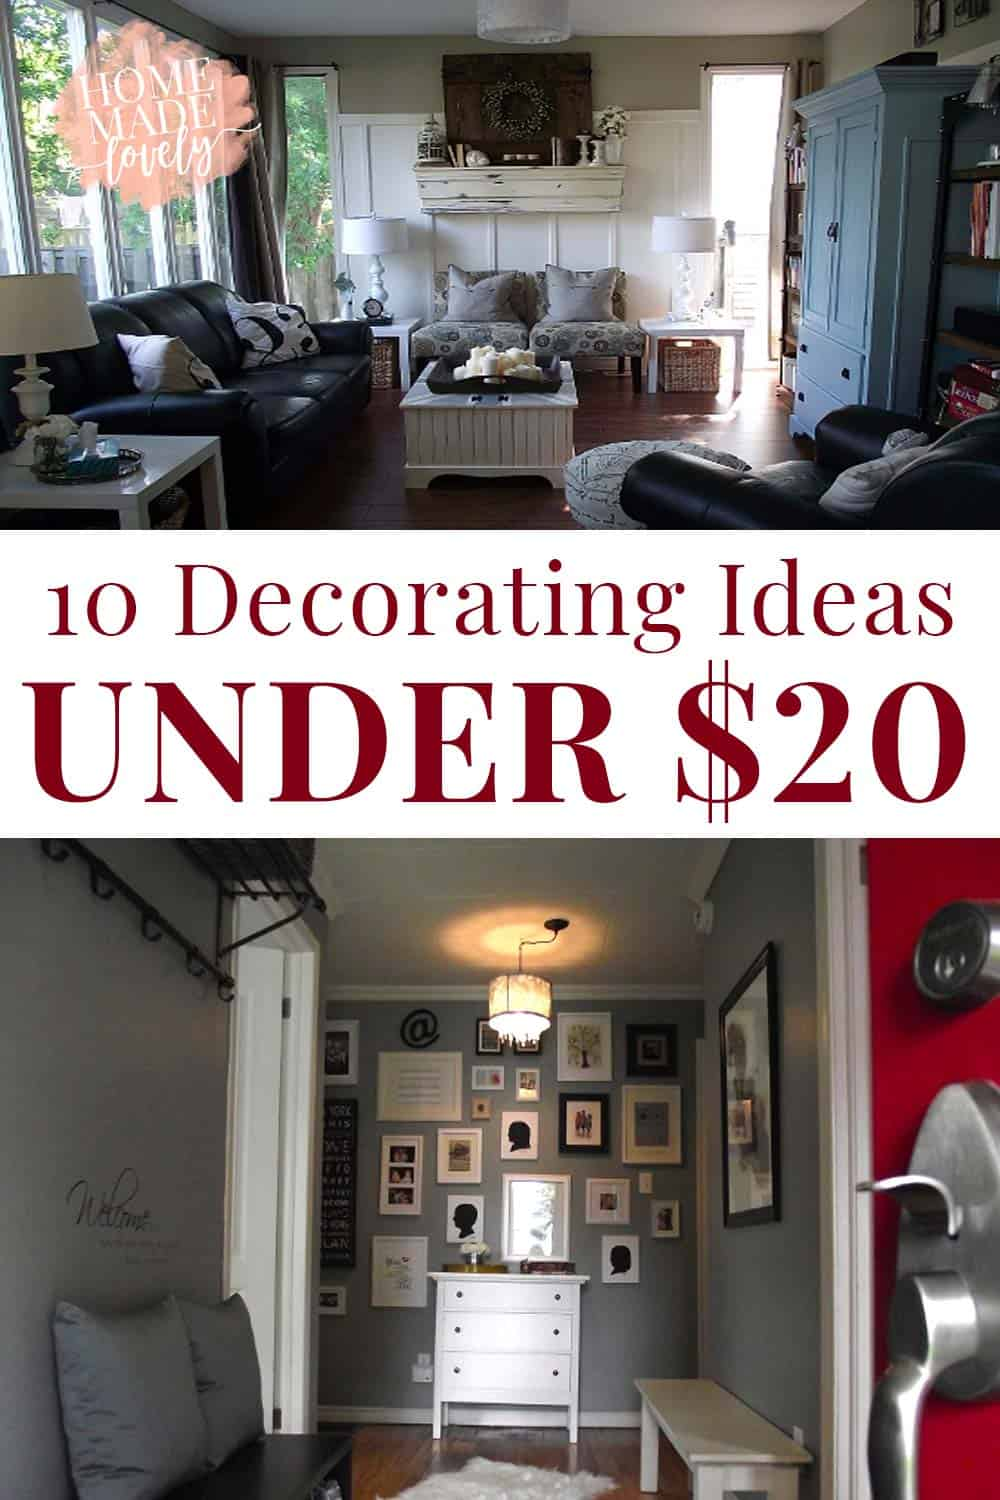 Have you ever wanted to dress up a room or change it up a little - without breaking the bank or taking several weekends to do it? Well, take a look at these 10 Decorating Ideas Under $20.